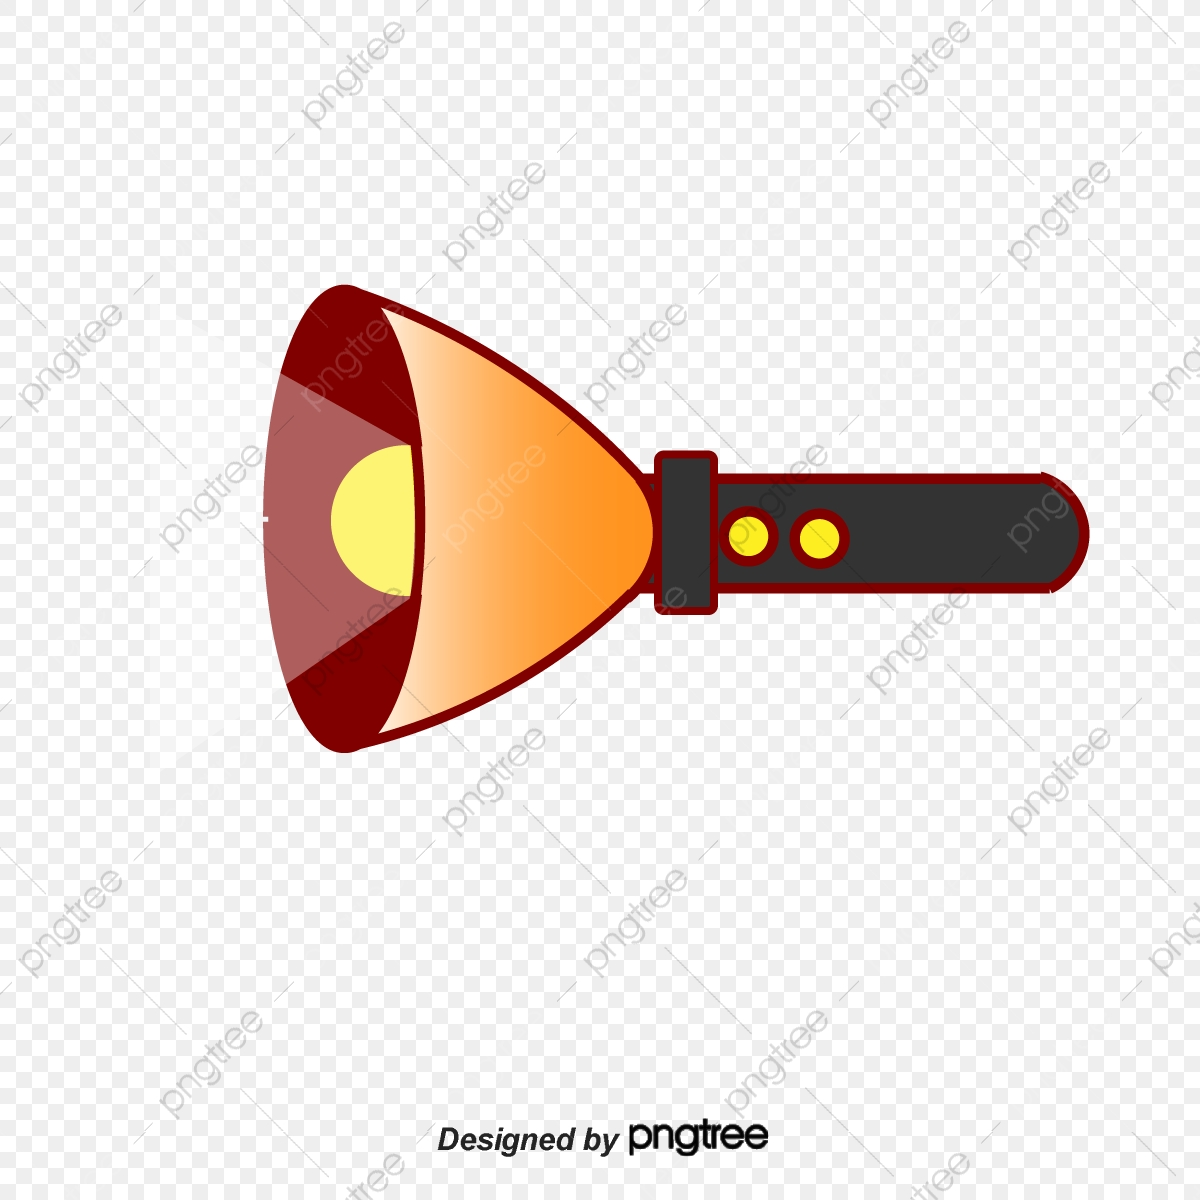 Flashlight And Beam, Flashlight, Beam, Vector PNG Transparent.